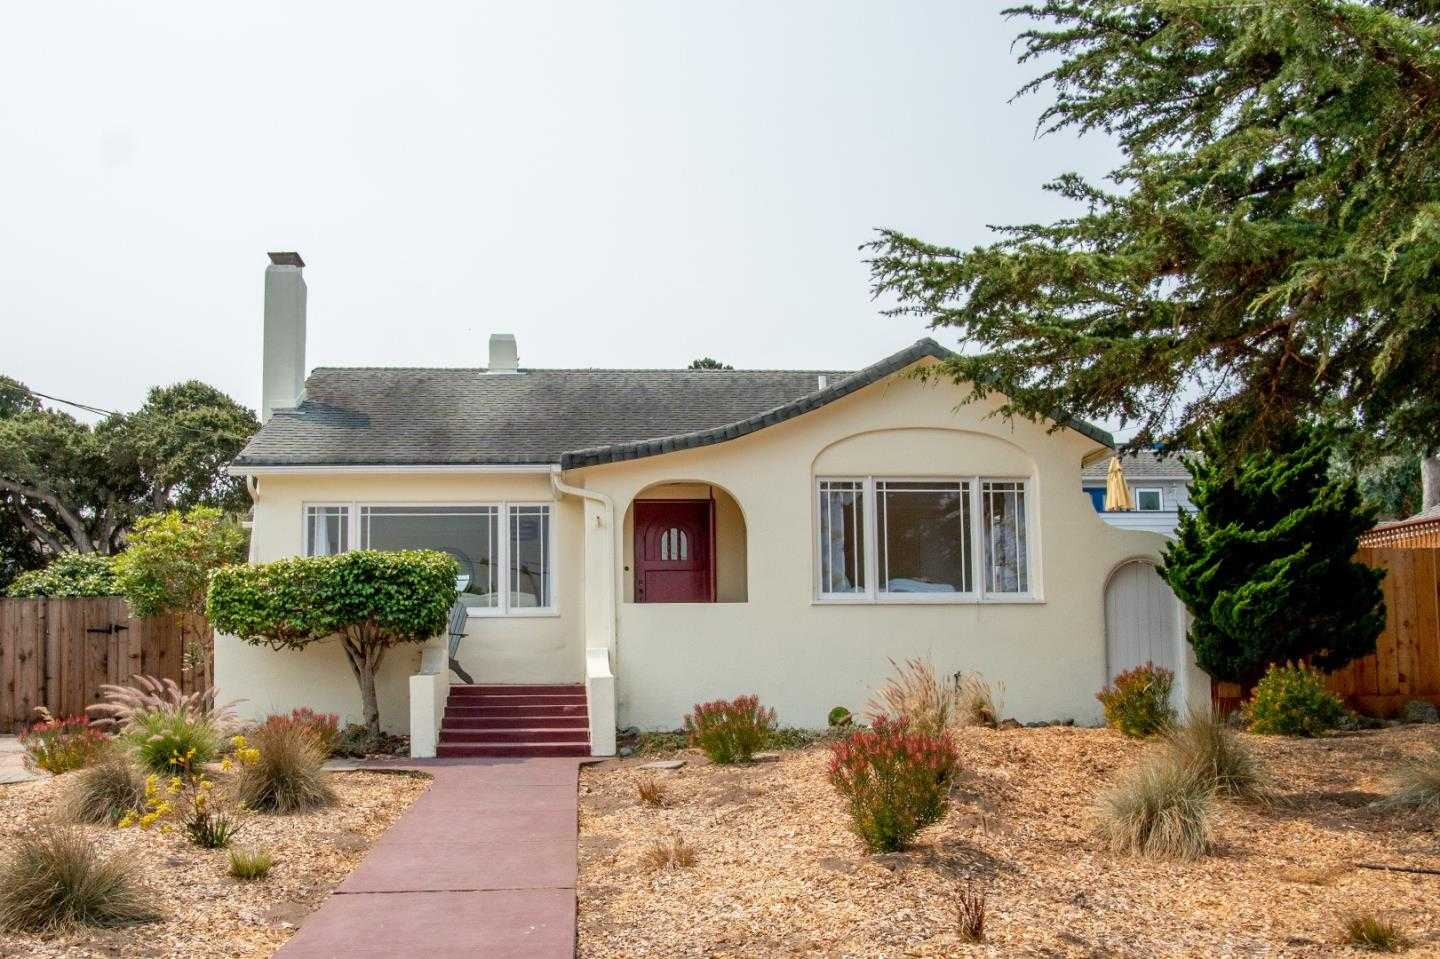 $1,399,000 - 2Br/1Ba -  for Sale in Pacific Grove